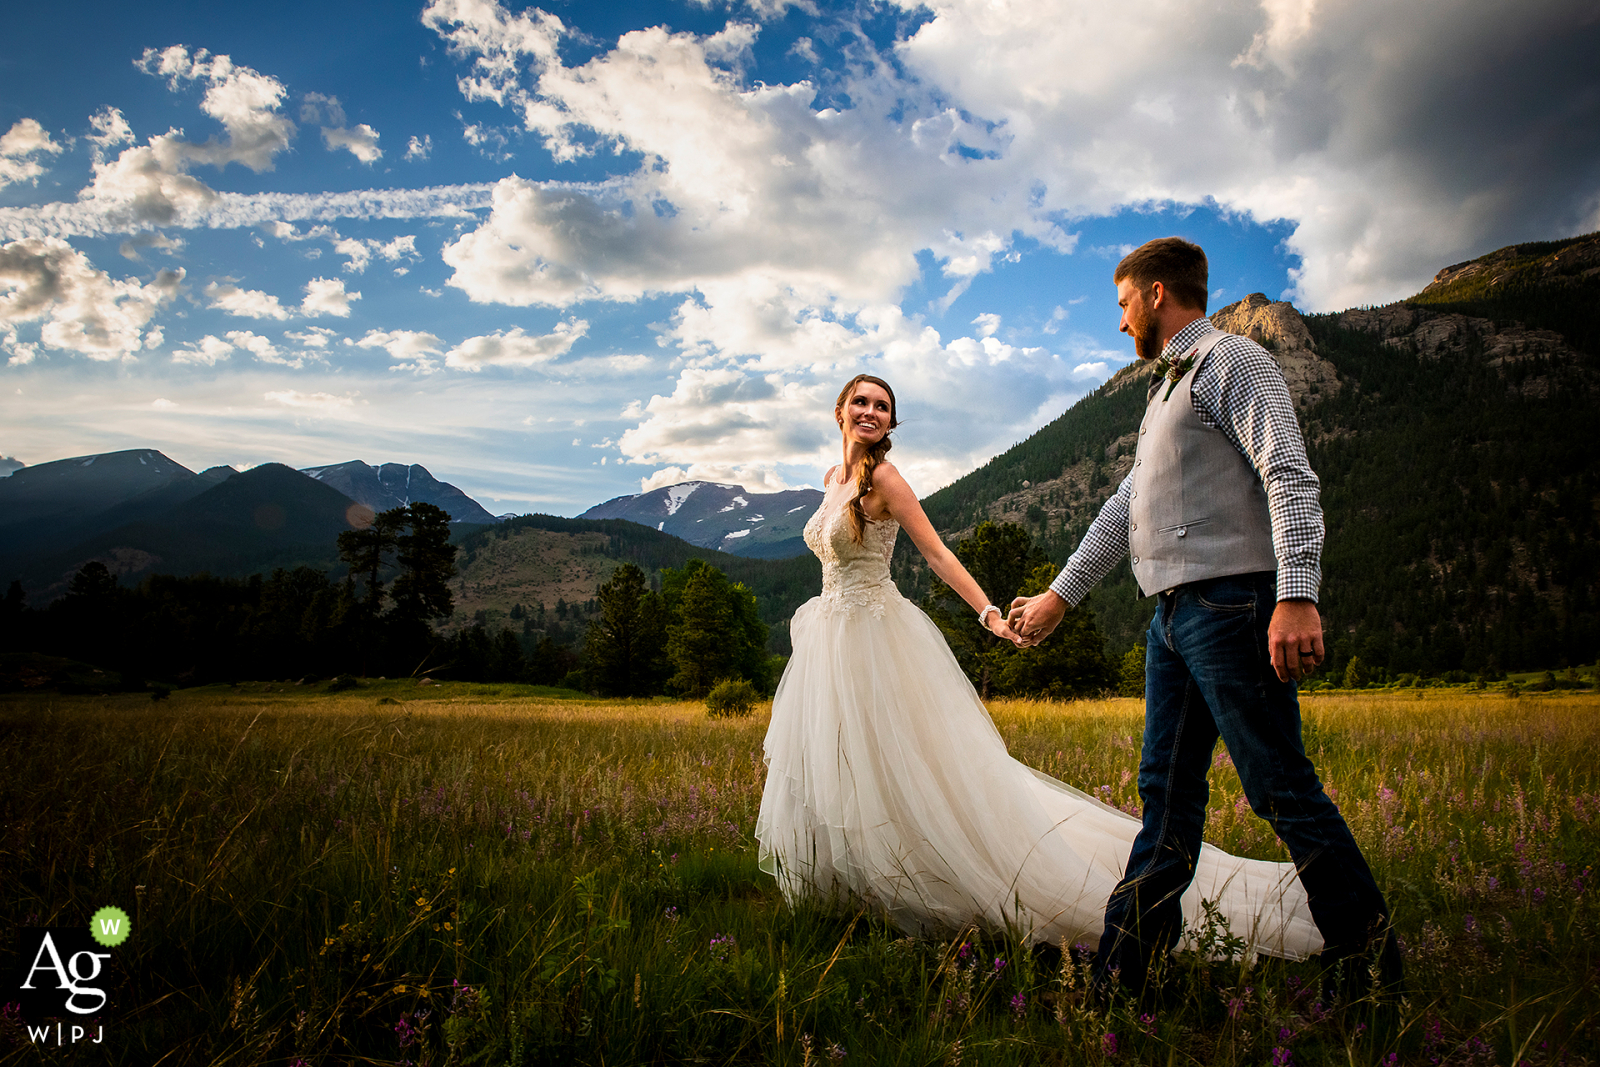 Bride and groom walking through meadow for a wedding portrait at the Rocky Mountain National Park (Estes Park, CO)